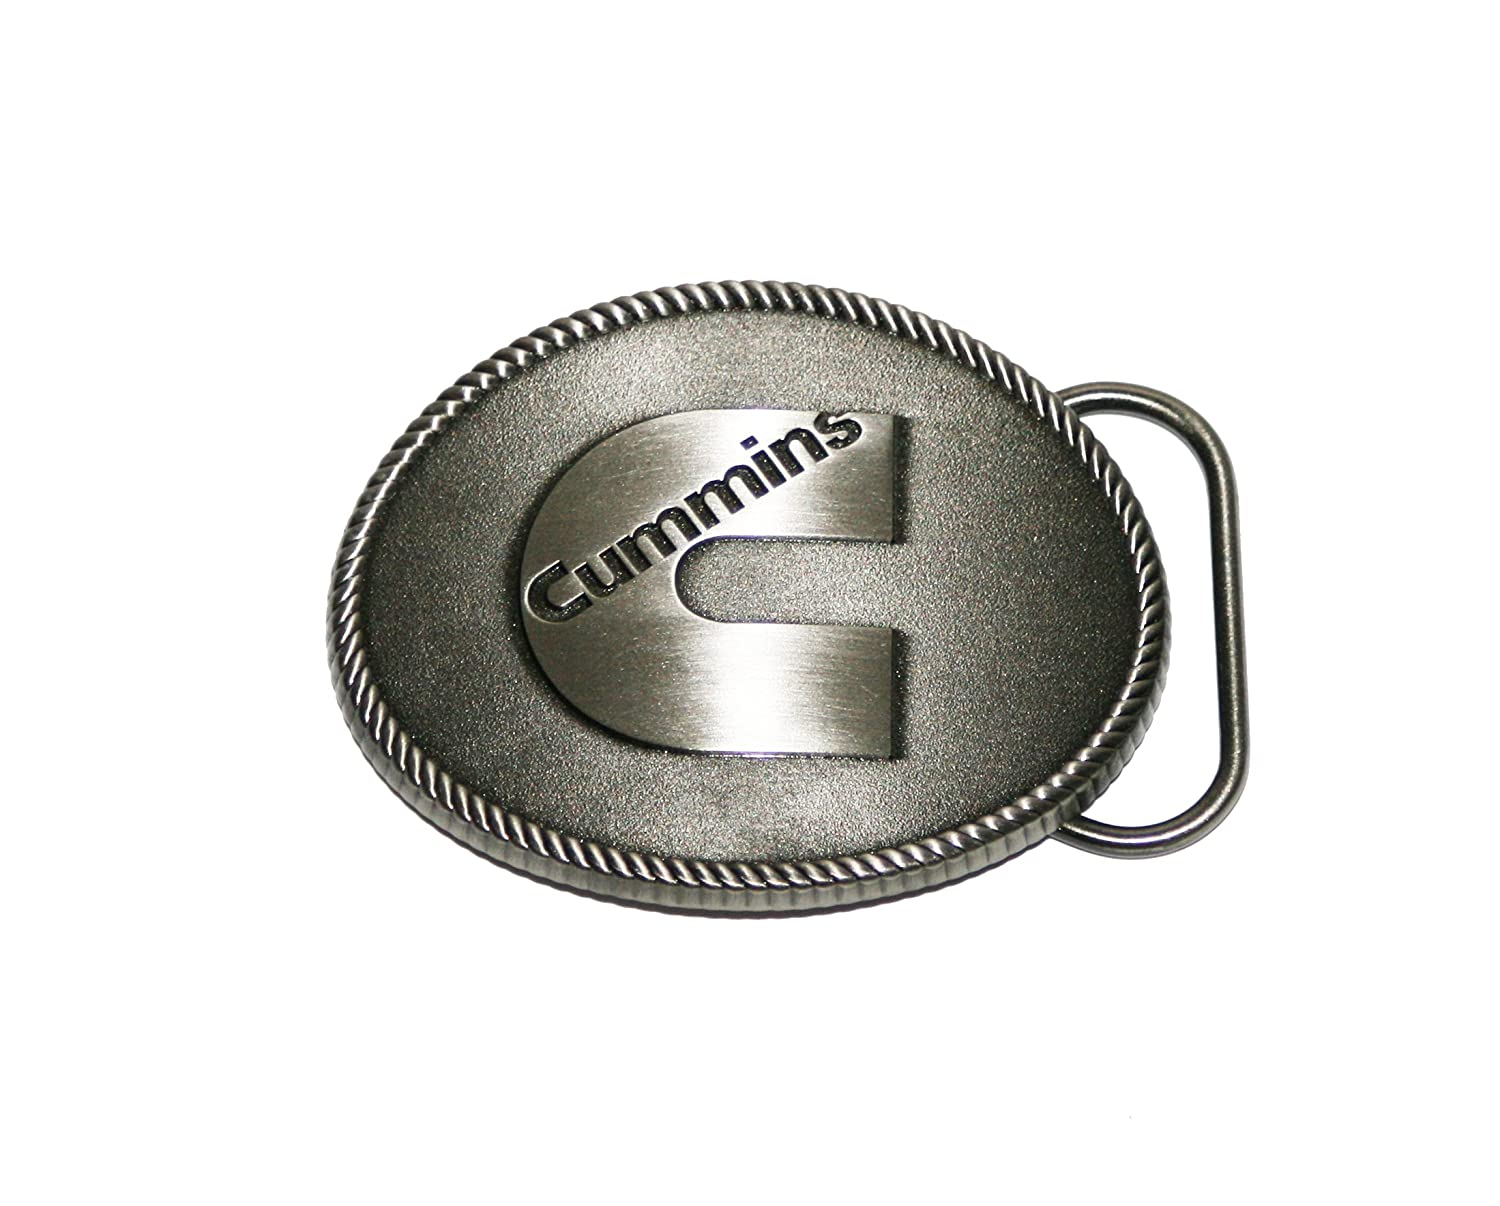 Cummins Diesel Heavy Duty Cowboy C Logo Belt Buckle BDA